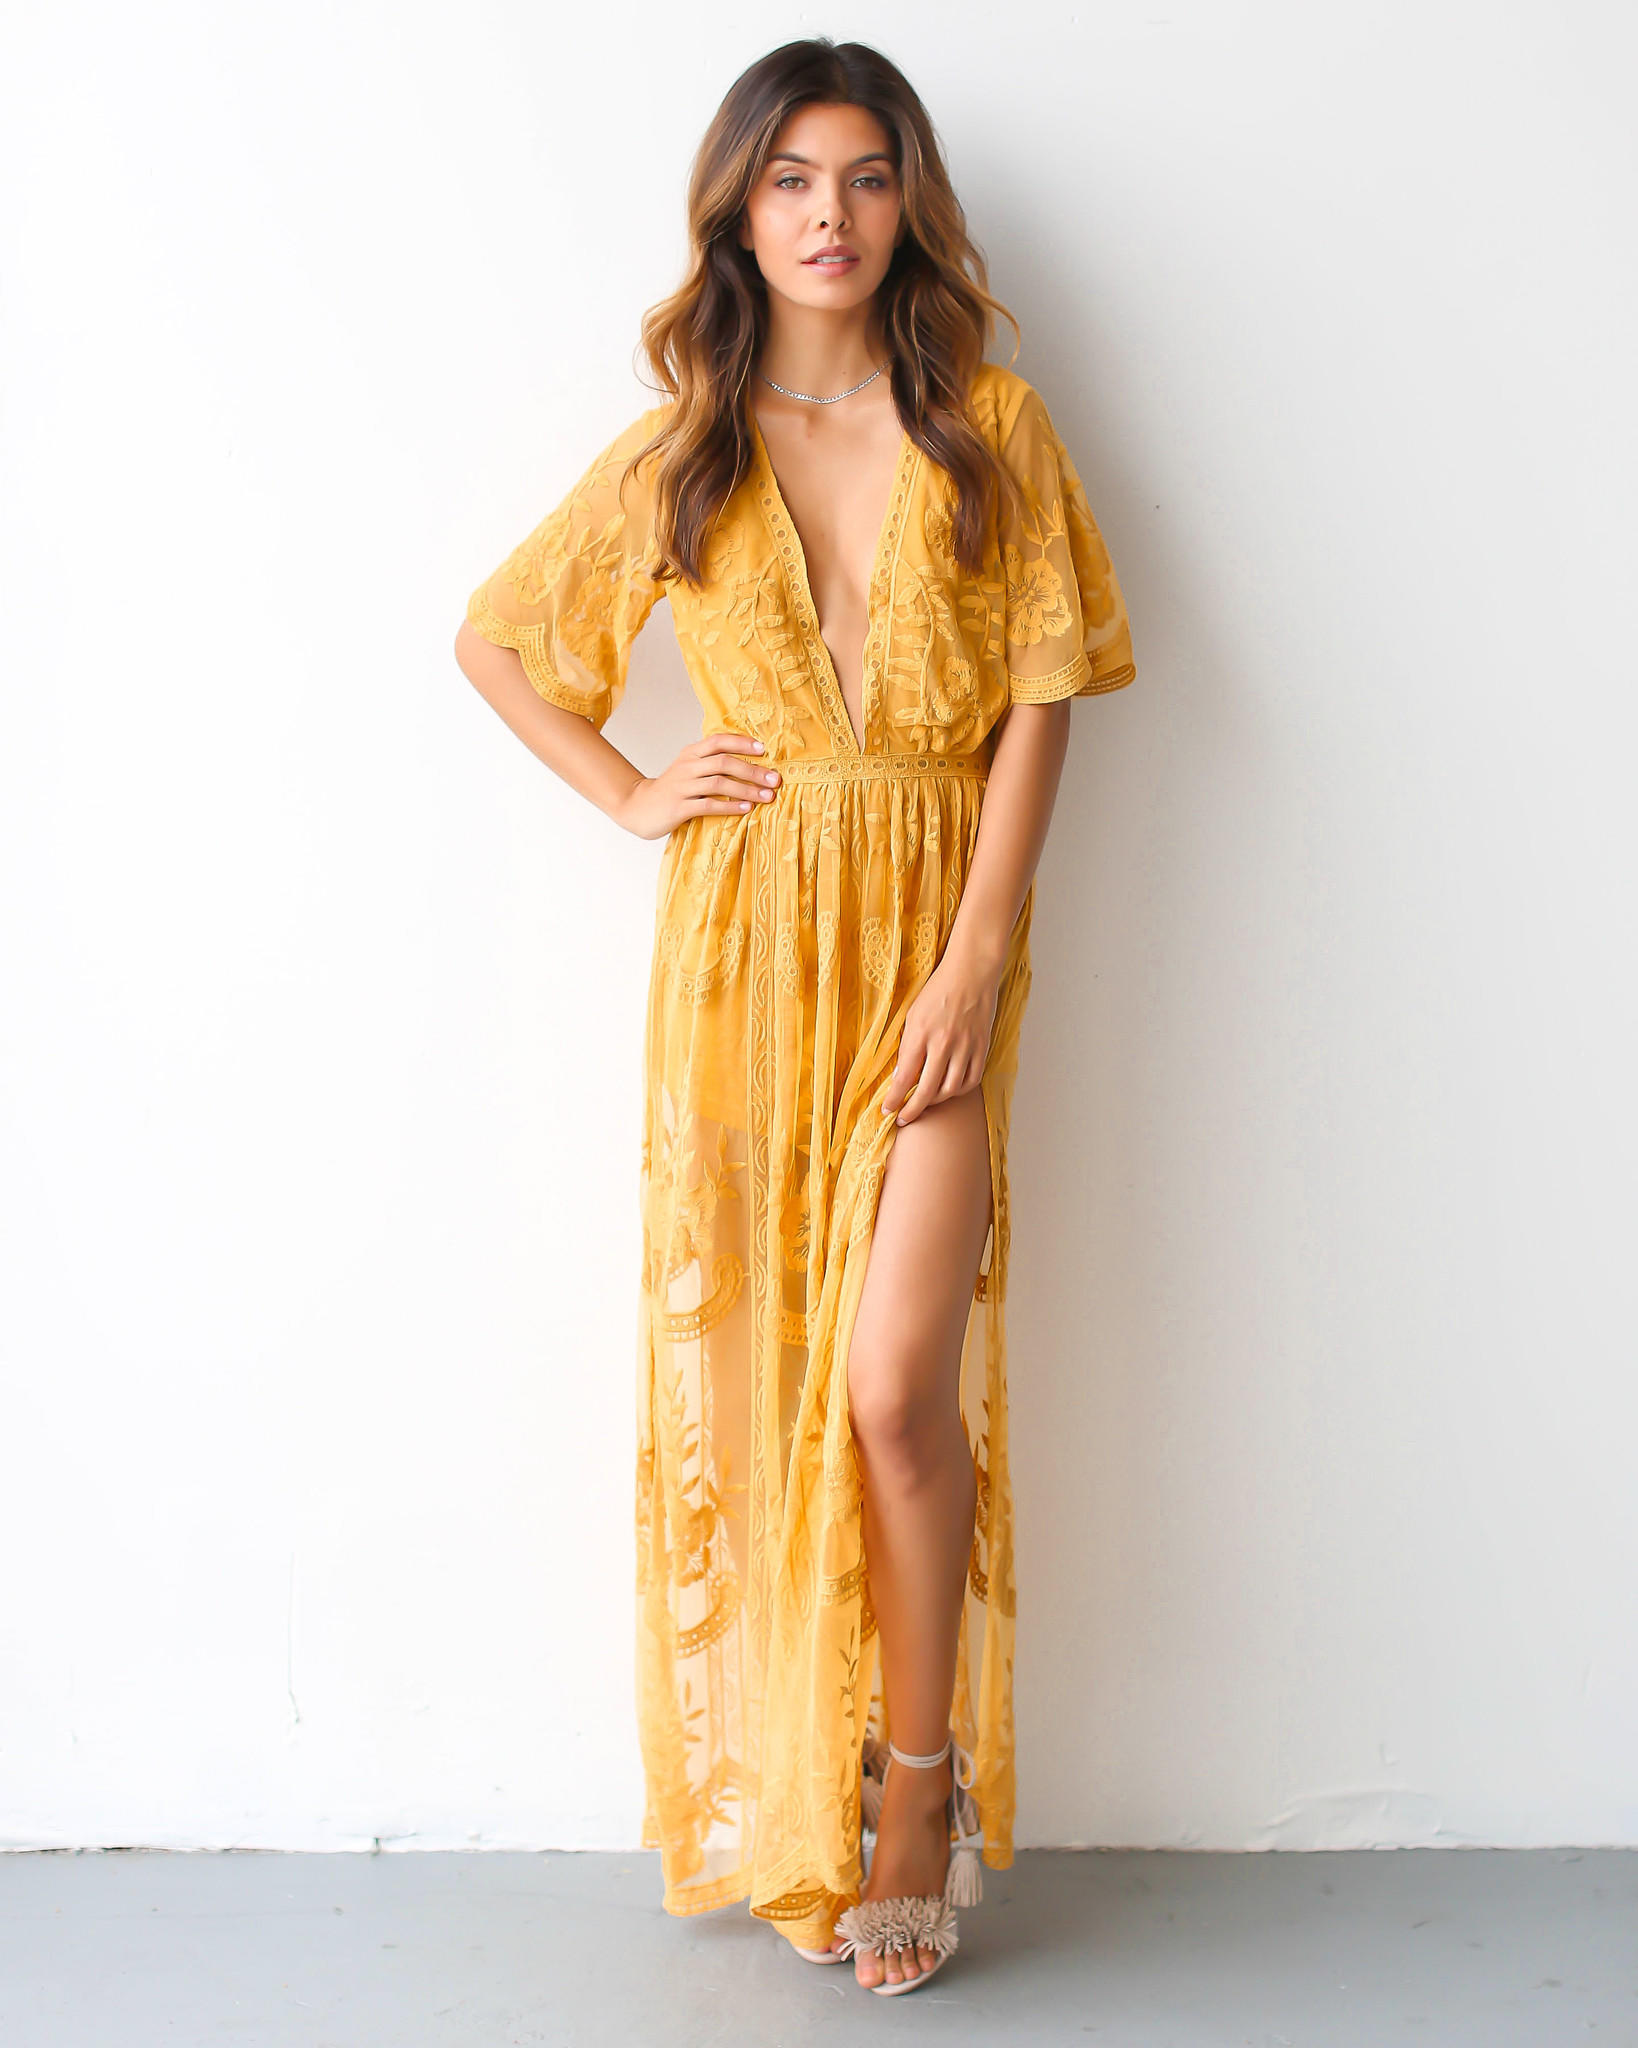 Tempting Preorder Thora Maxi Save See It Preorder Thora Maxi Romper From Vici Saved By Dress Miami Saved By Dress Maternity wedding dress Saved By The Dress